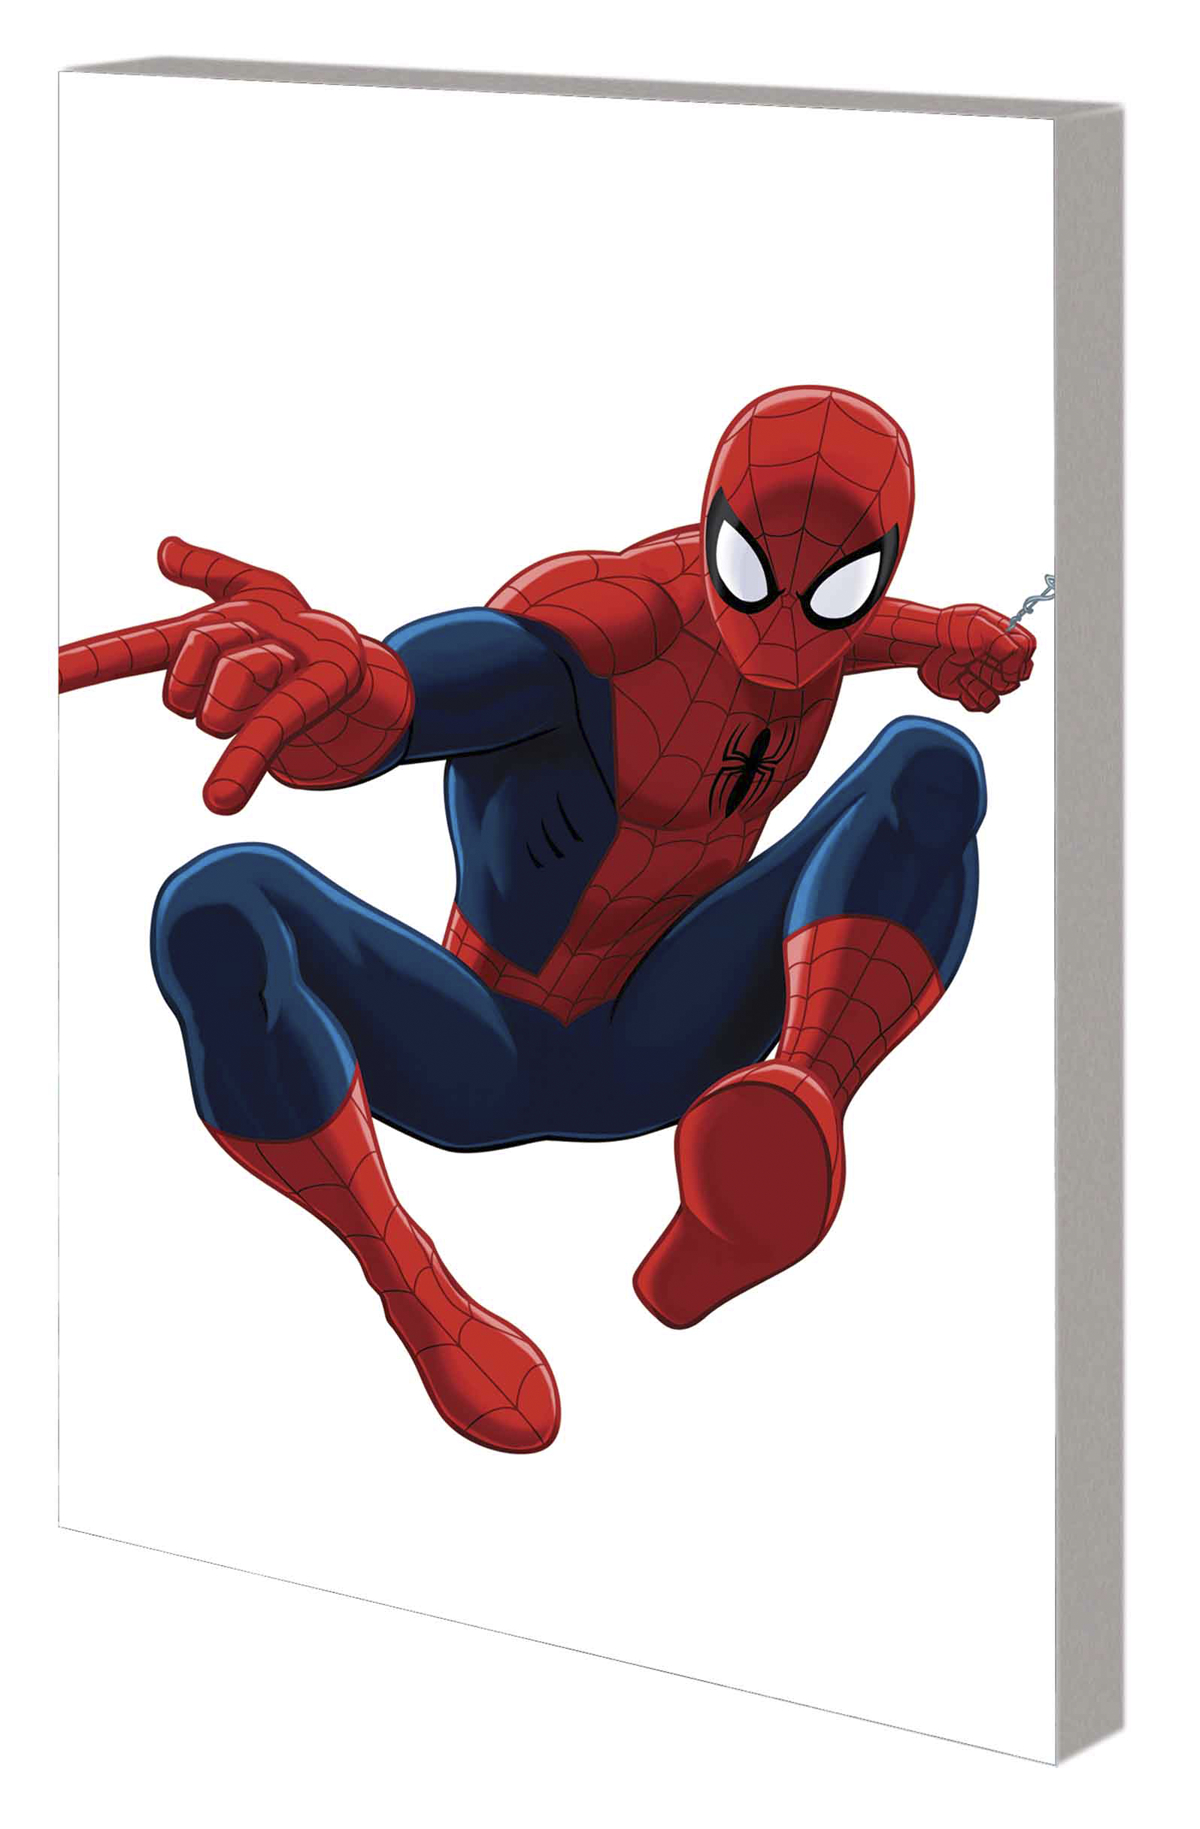 MARVEL UNIVERSE ULT SPIDER-MAN DIGEST TP VOL 04